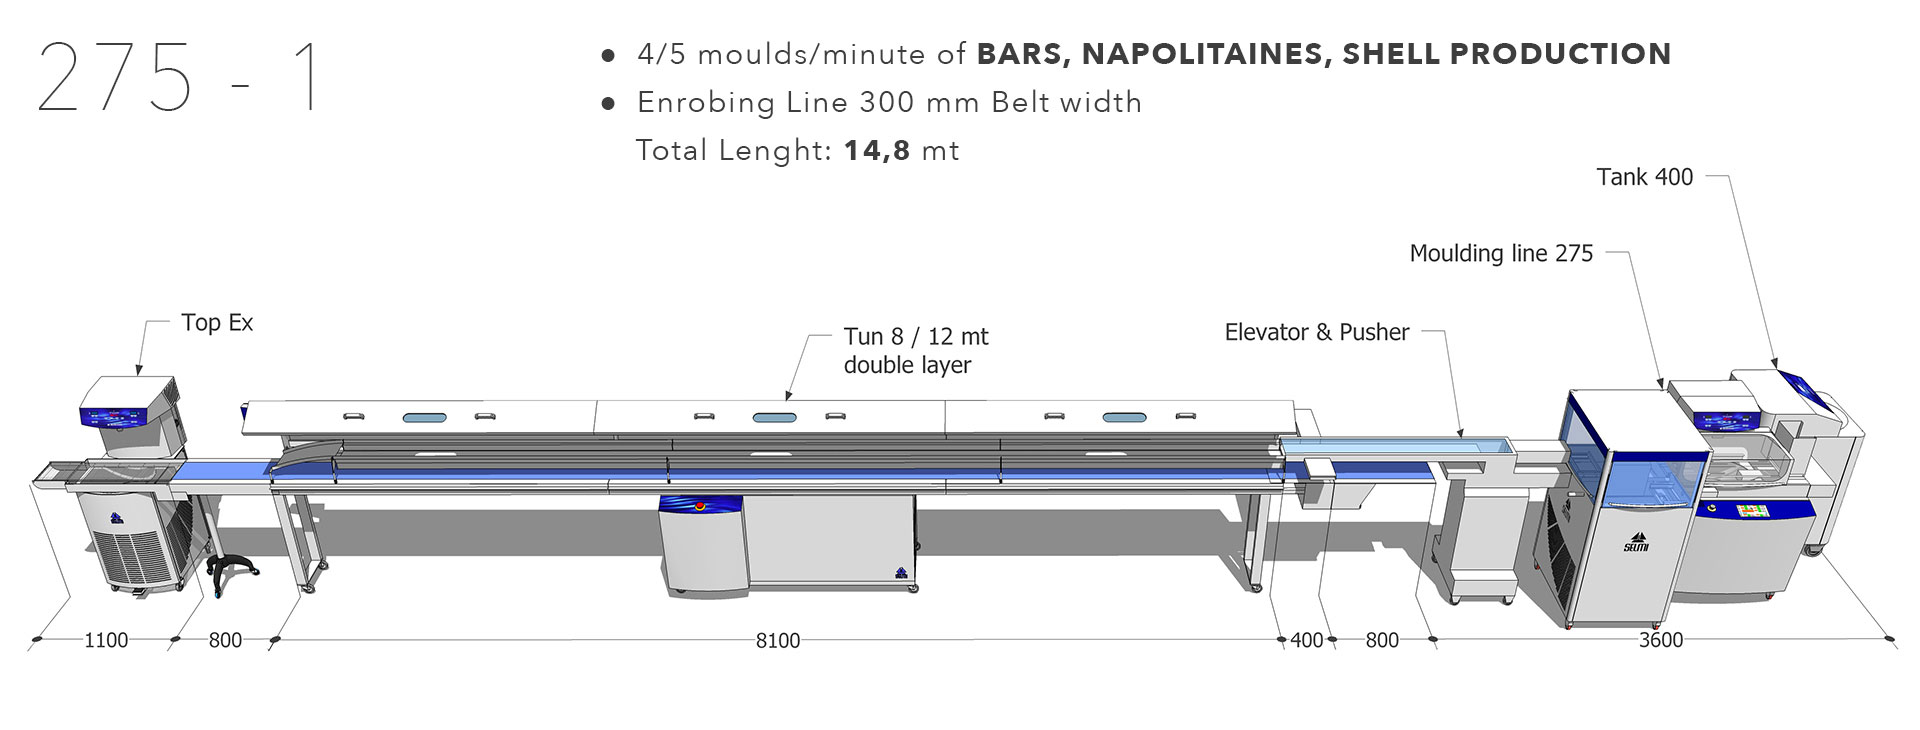 Moulding Line 275: 14,8 mt configuration for 4/5 moulds/minute of bars, napolitaines, shell production